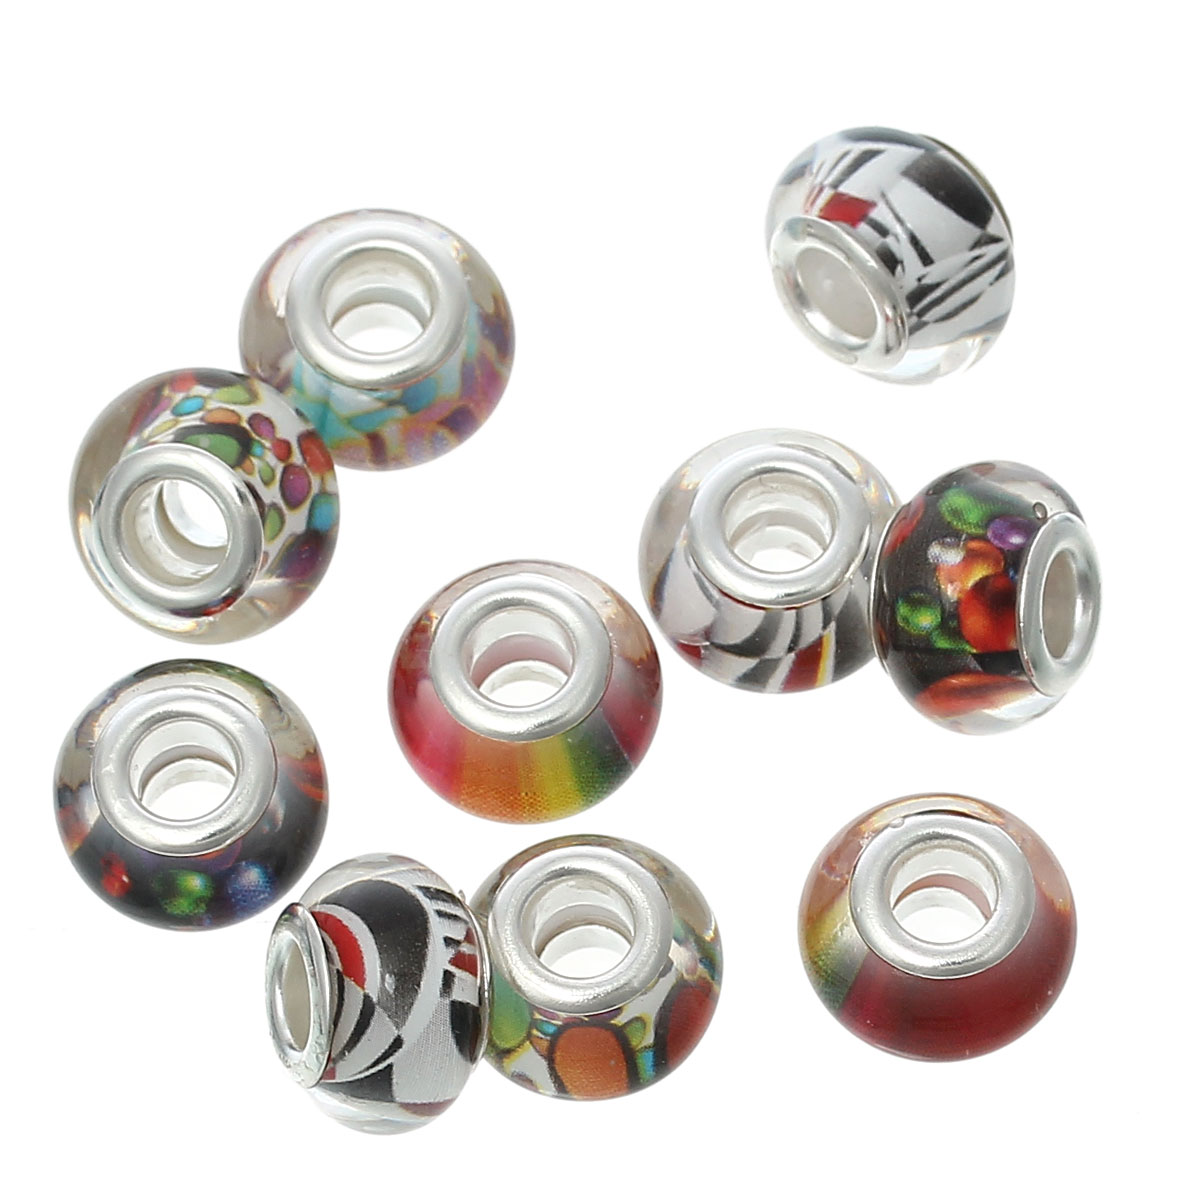 "DoreenBeads European Style Charm Beads Round Mixed Pattern About 14mm( <font><b>4</b></font>/8"") <font><b>x</b></font> 9mm( <font><b>3</b></font>/8""),Hole: Approx 5.1mm,<font><b>20</b></font> PCs 2015 new"